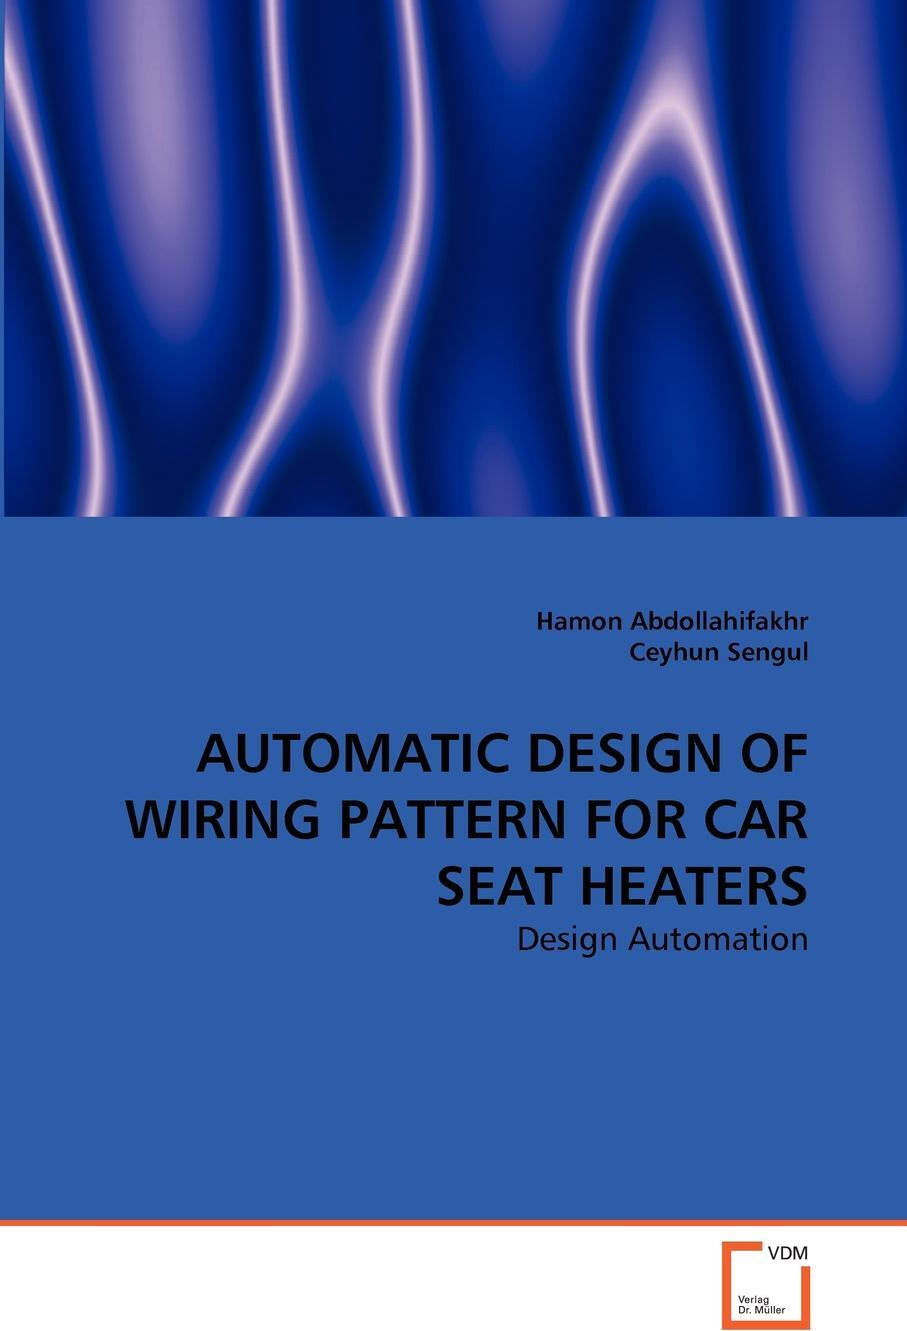 AUTOMATIC DESIGN OF WIRING PATTERN FOR CAR SEAT HEATERS